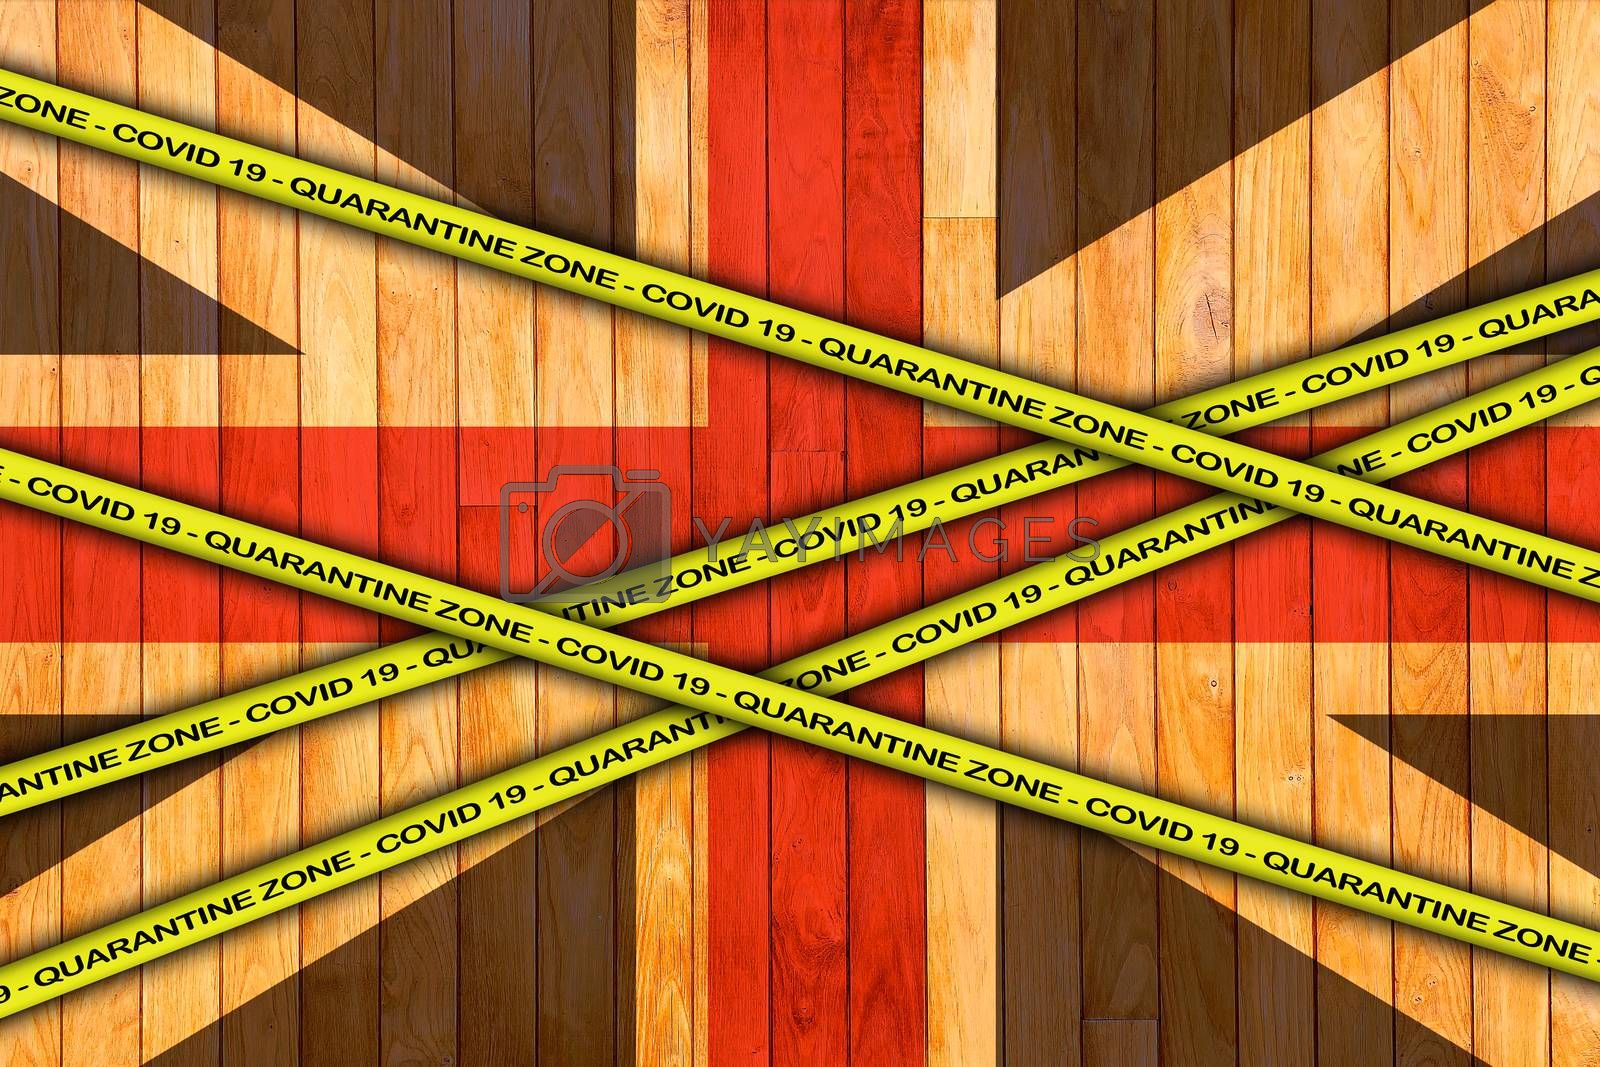 COVID-19 warning yellow ribbon written with: Quarantine zone Cover 19 on United Kingdom flag illustration. Coronavirus danger area, quarantined country.